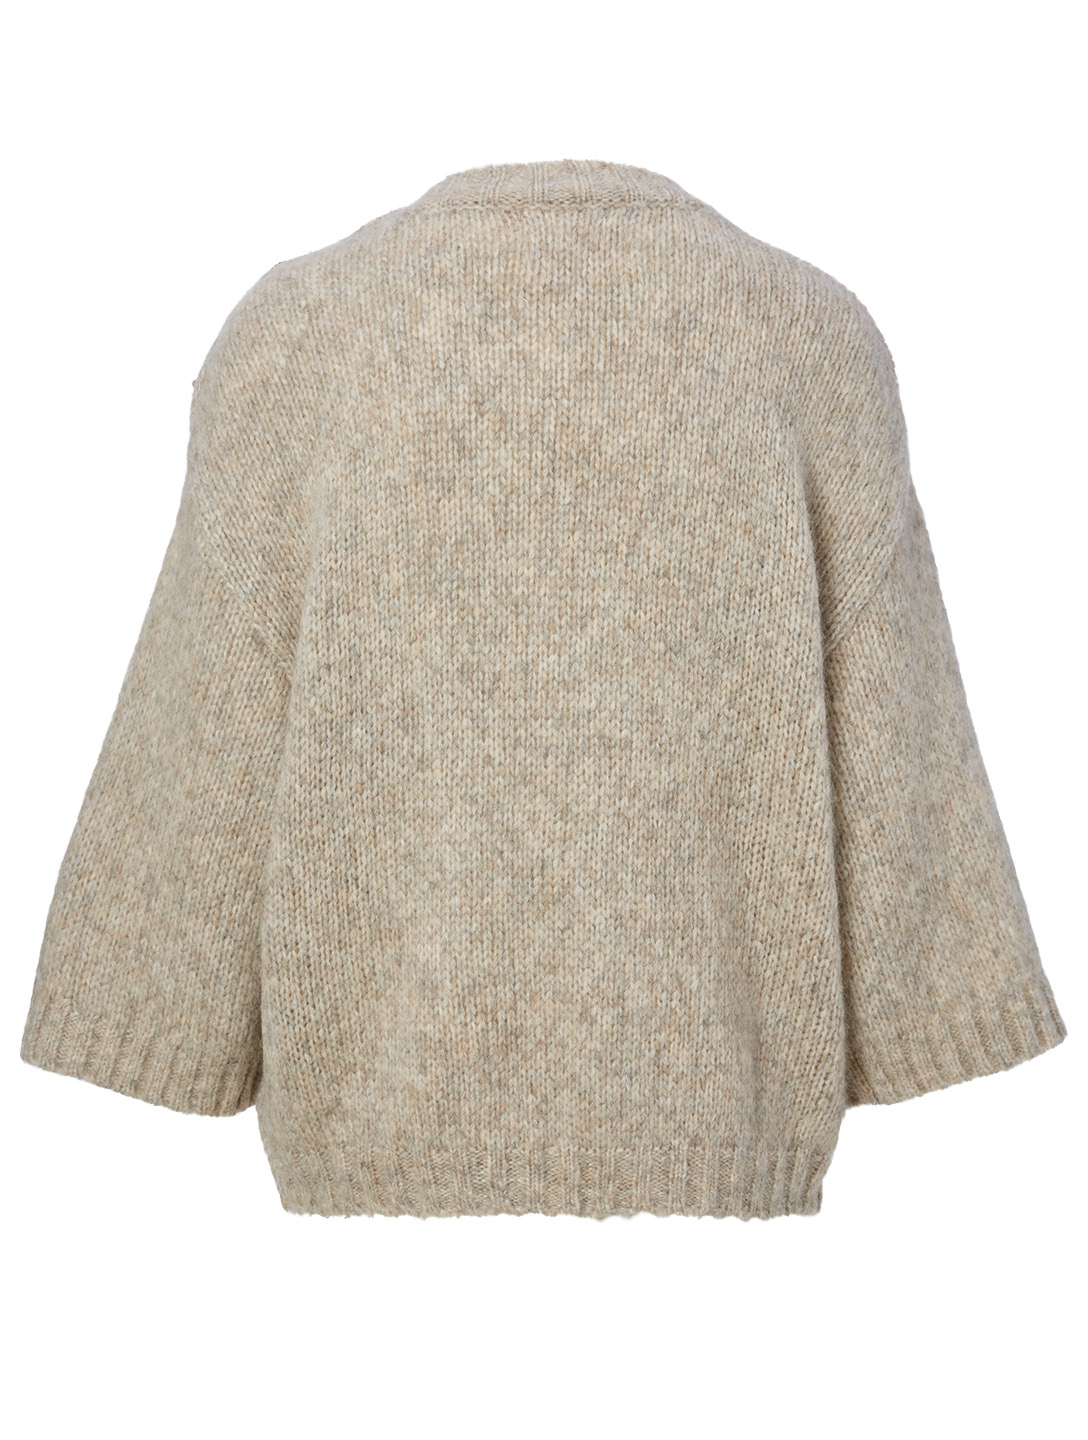 BA&SH Pepite Wool-Blend Sweater Women's Beige